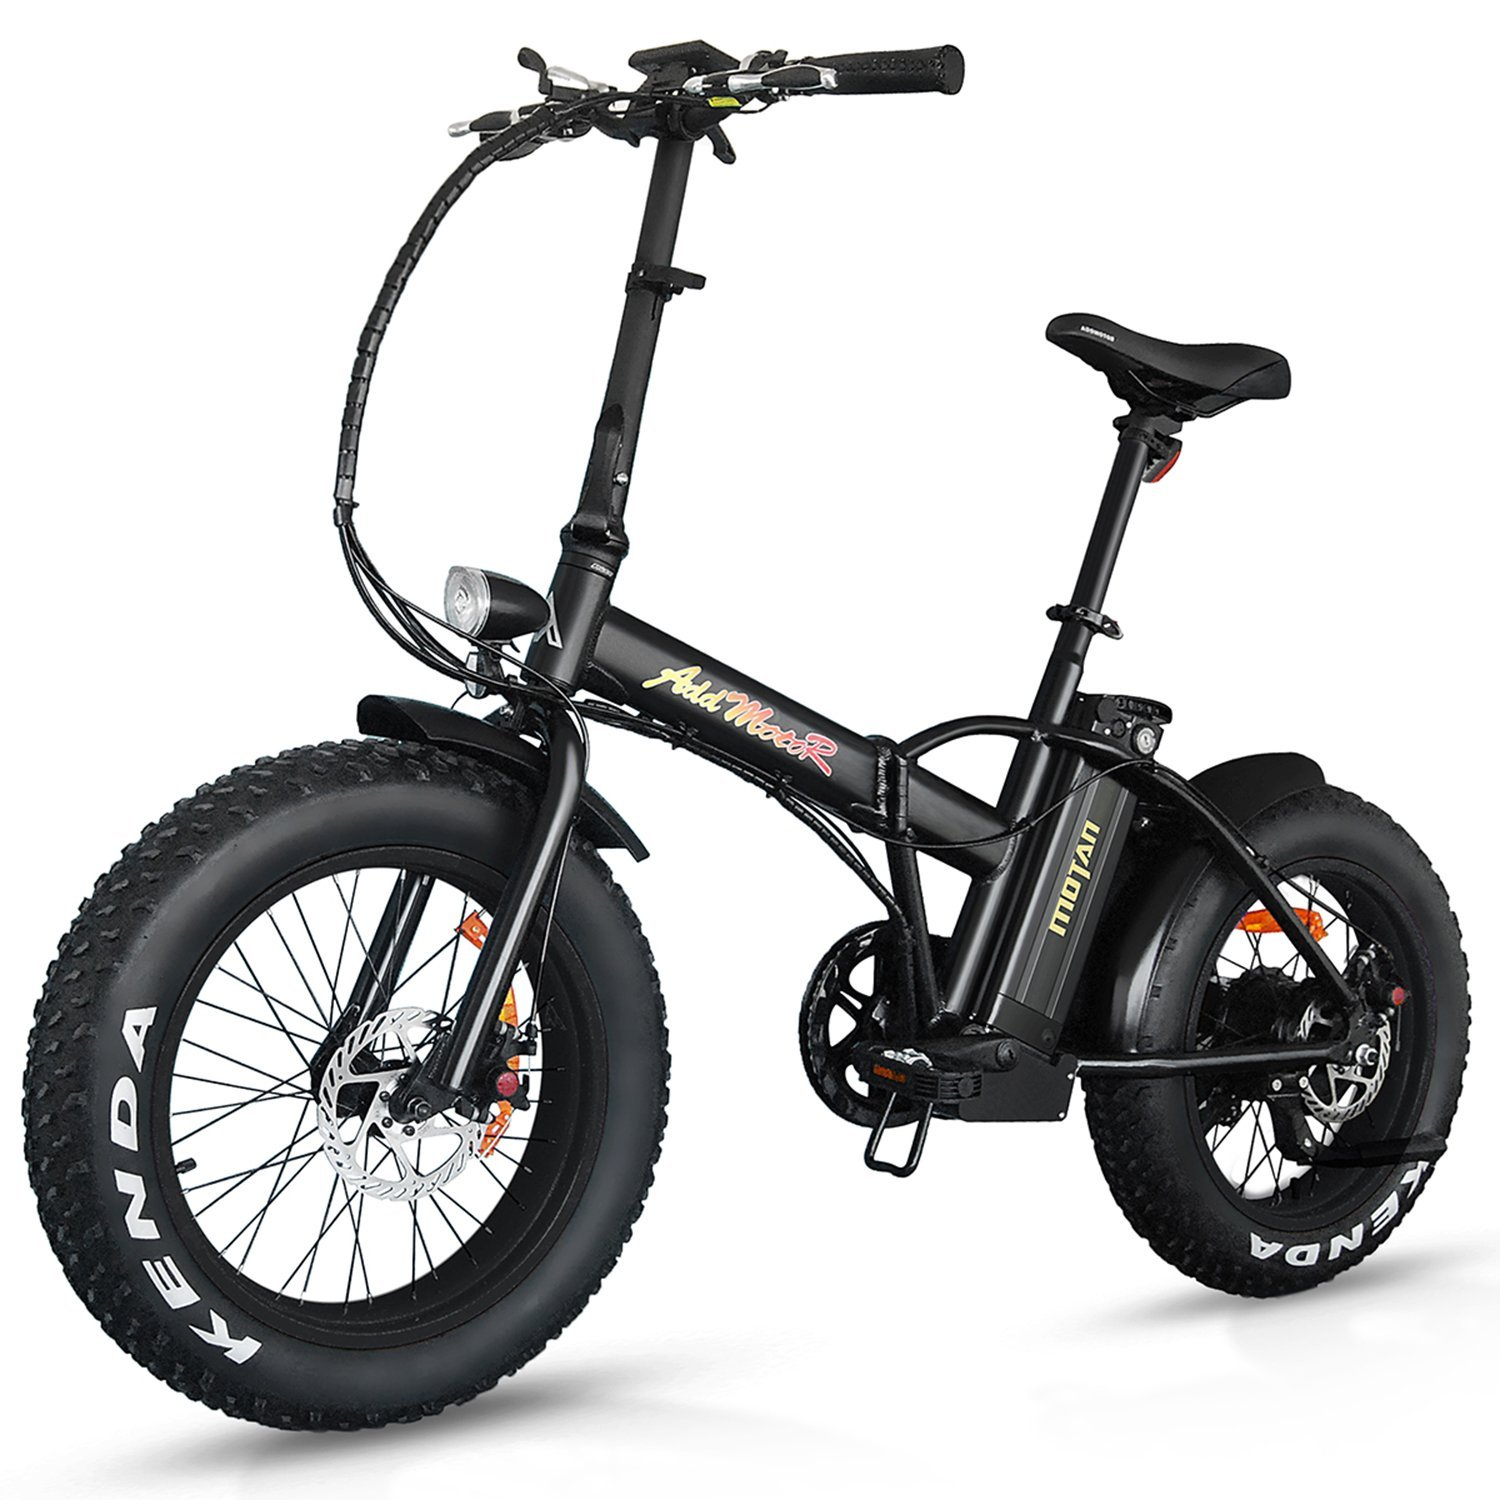 Electric Bicycles For Sale >> The 5 Top Rated Folding Electric Bikes 2018 | We Are The Cyclists